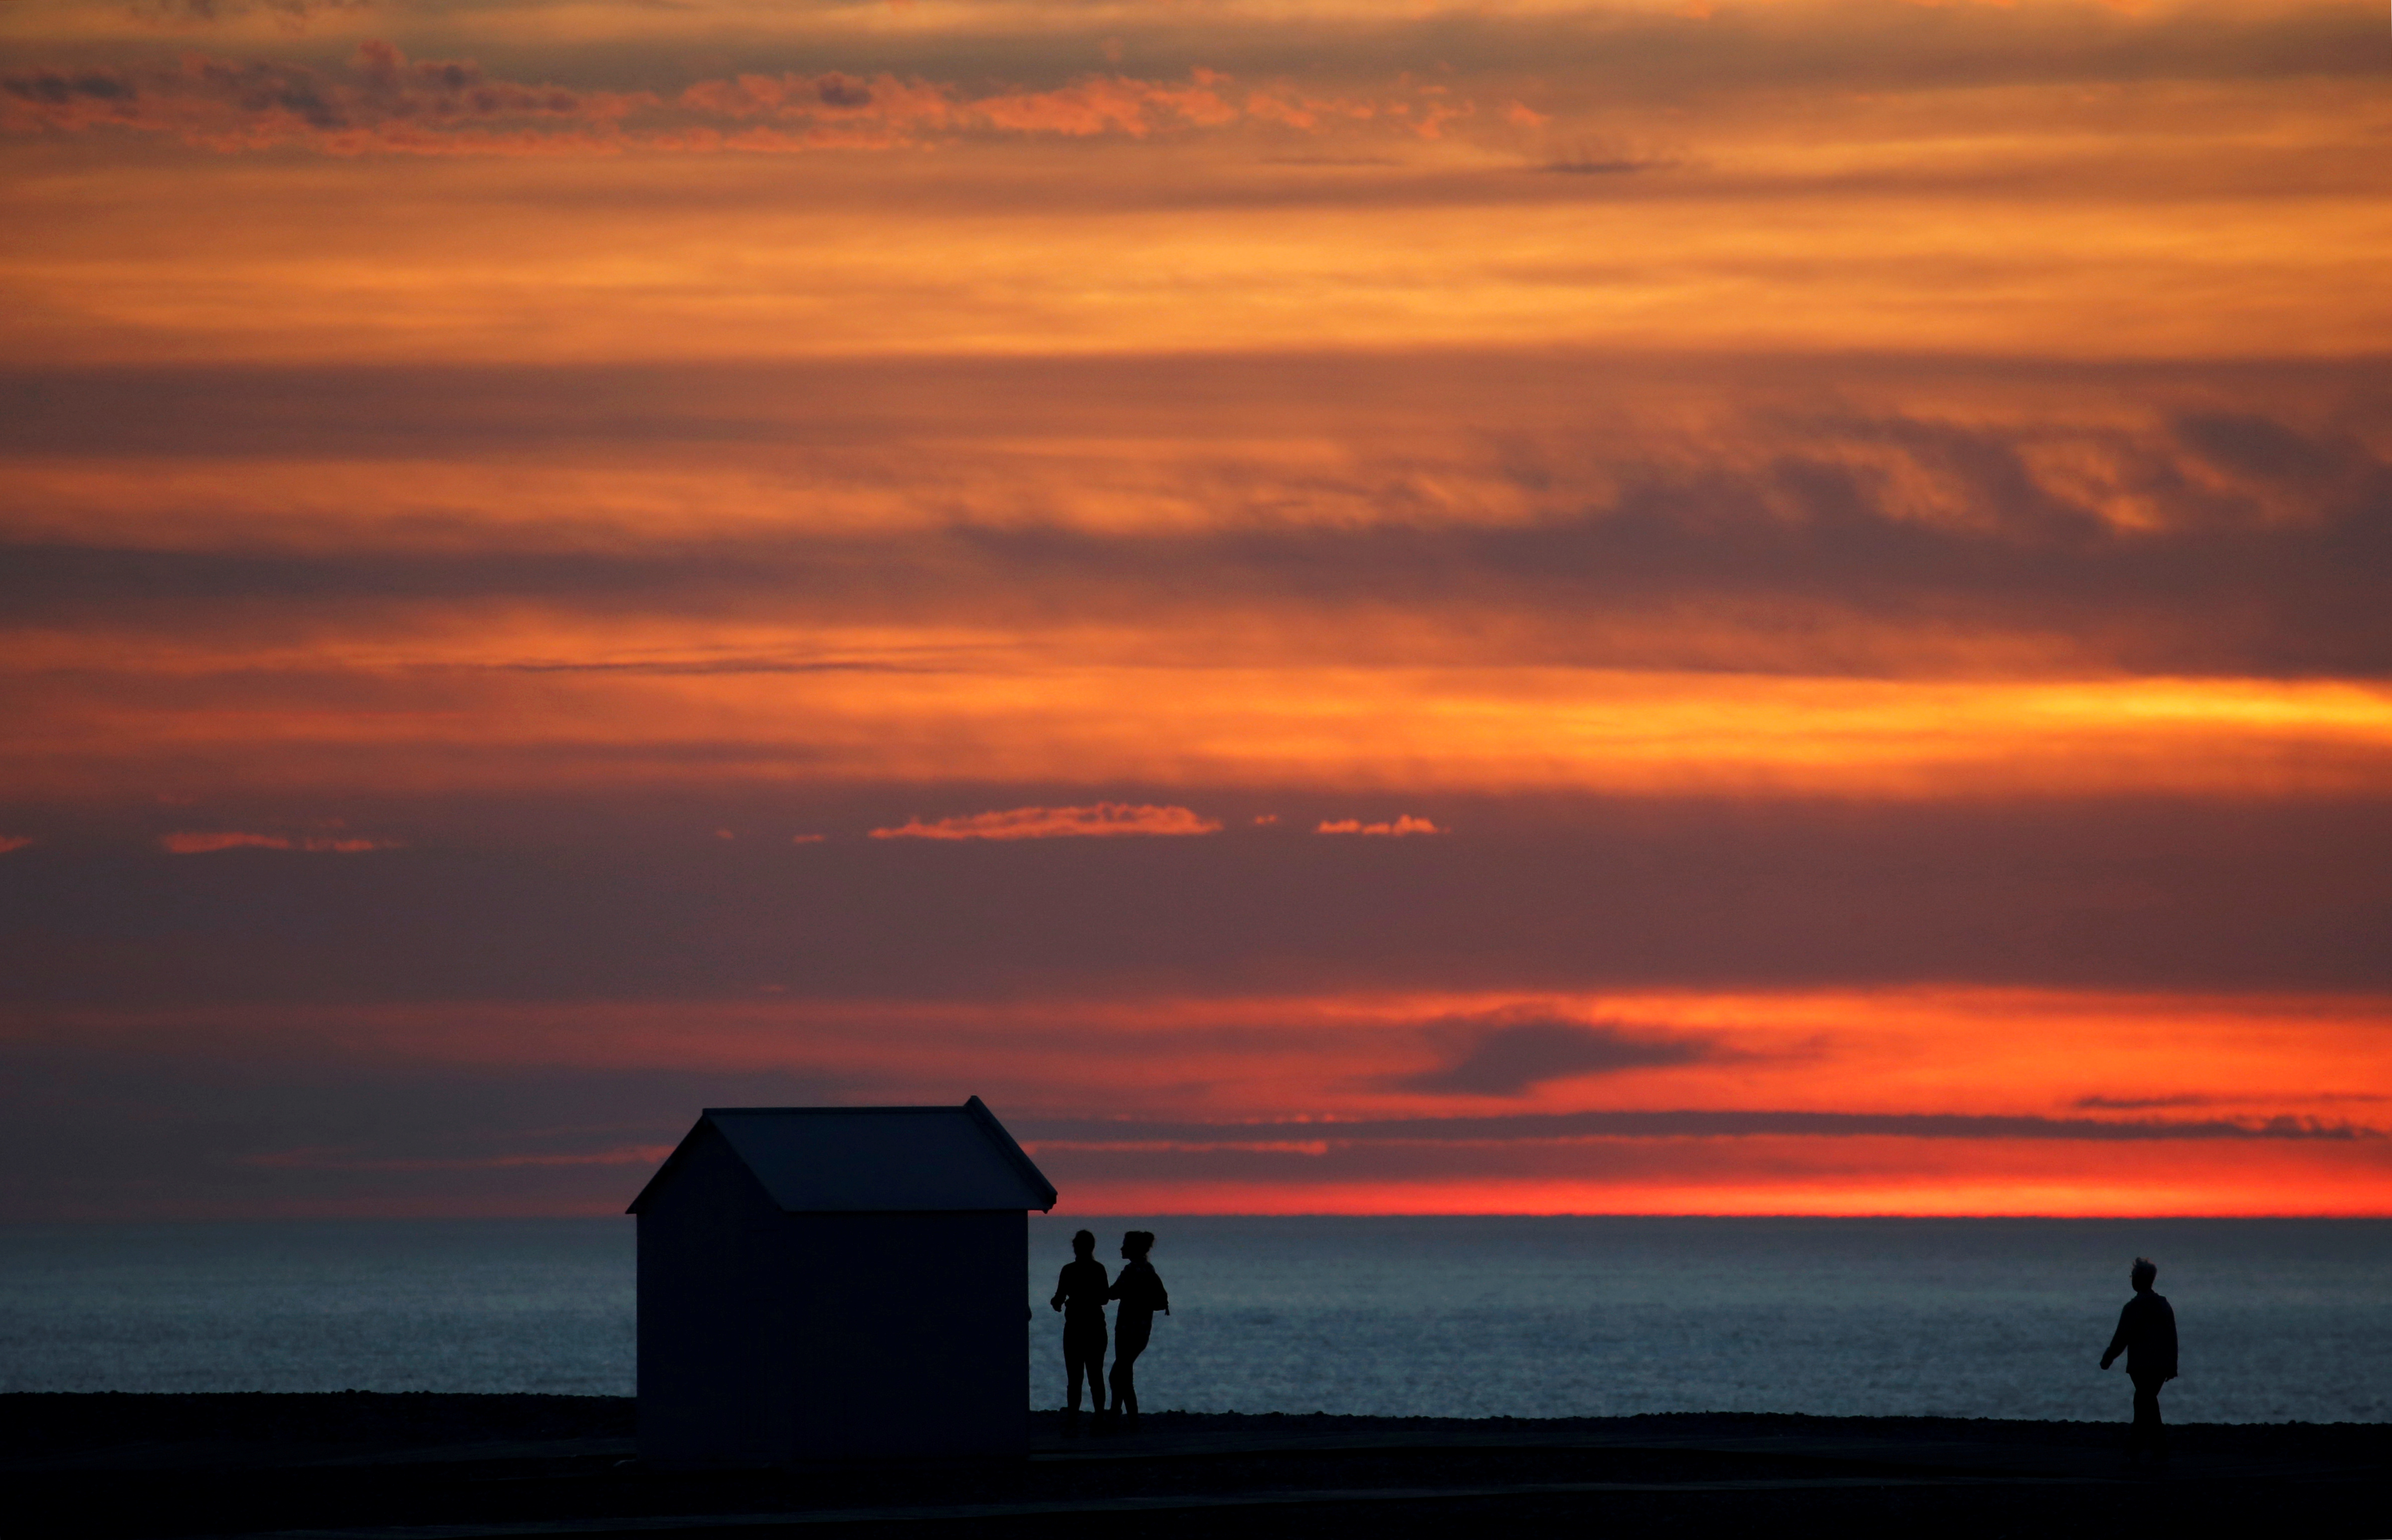 FILE PHOTO: People enjoy a walk at sunset past beach cabin on the pebbled beach in Cayeux-sur-Mer, France, October 13, 2018. REUTERS/Pascal Rossignol/File Photo